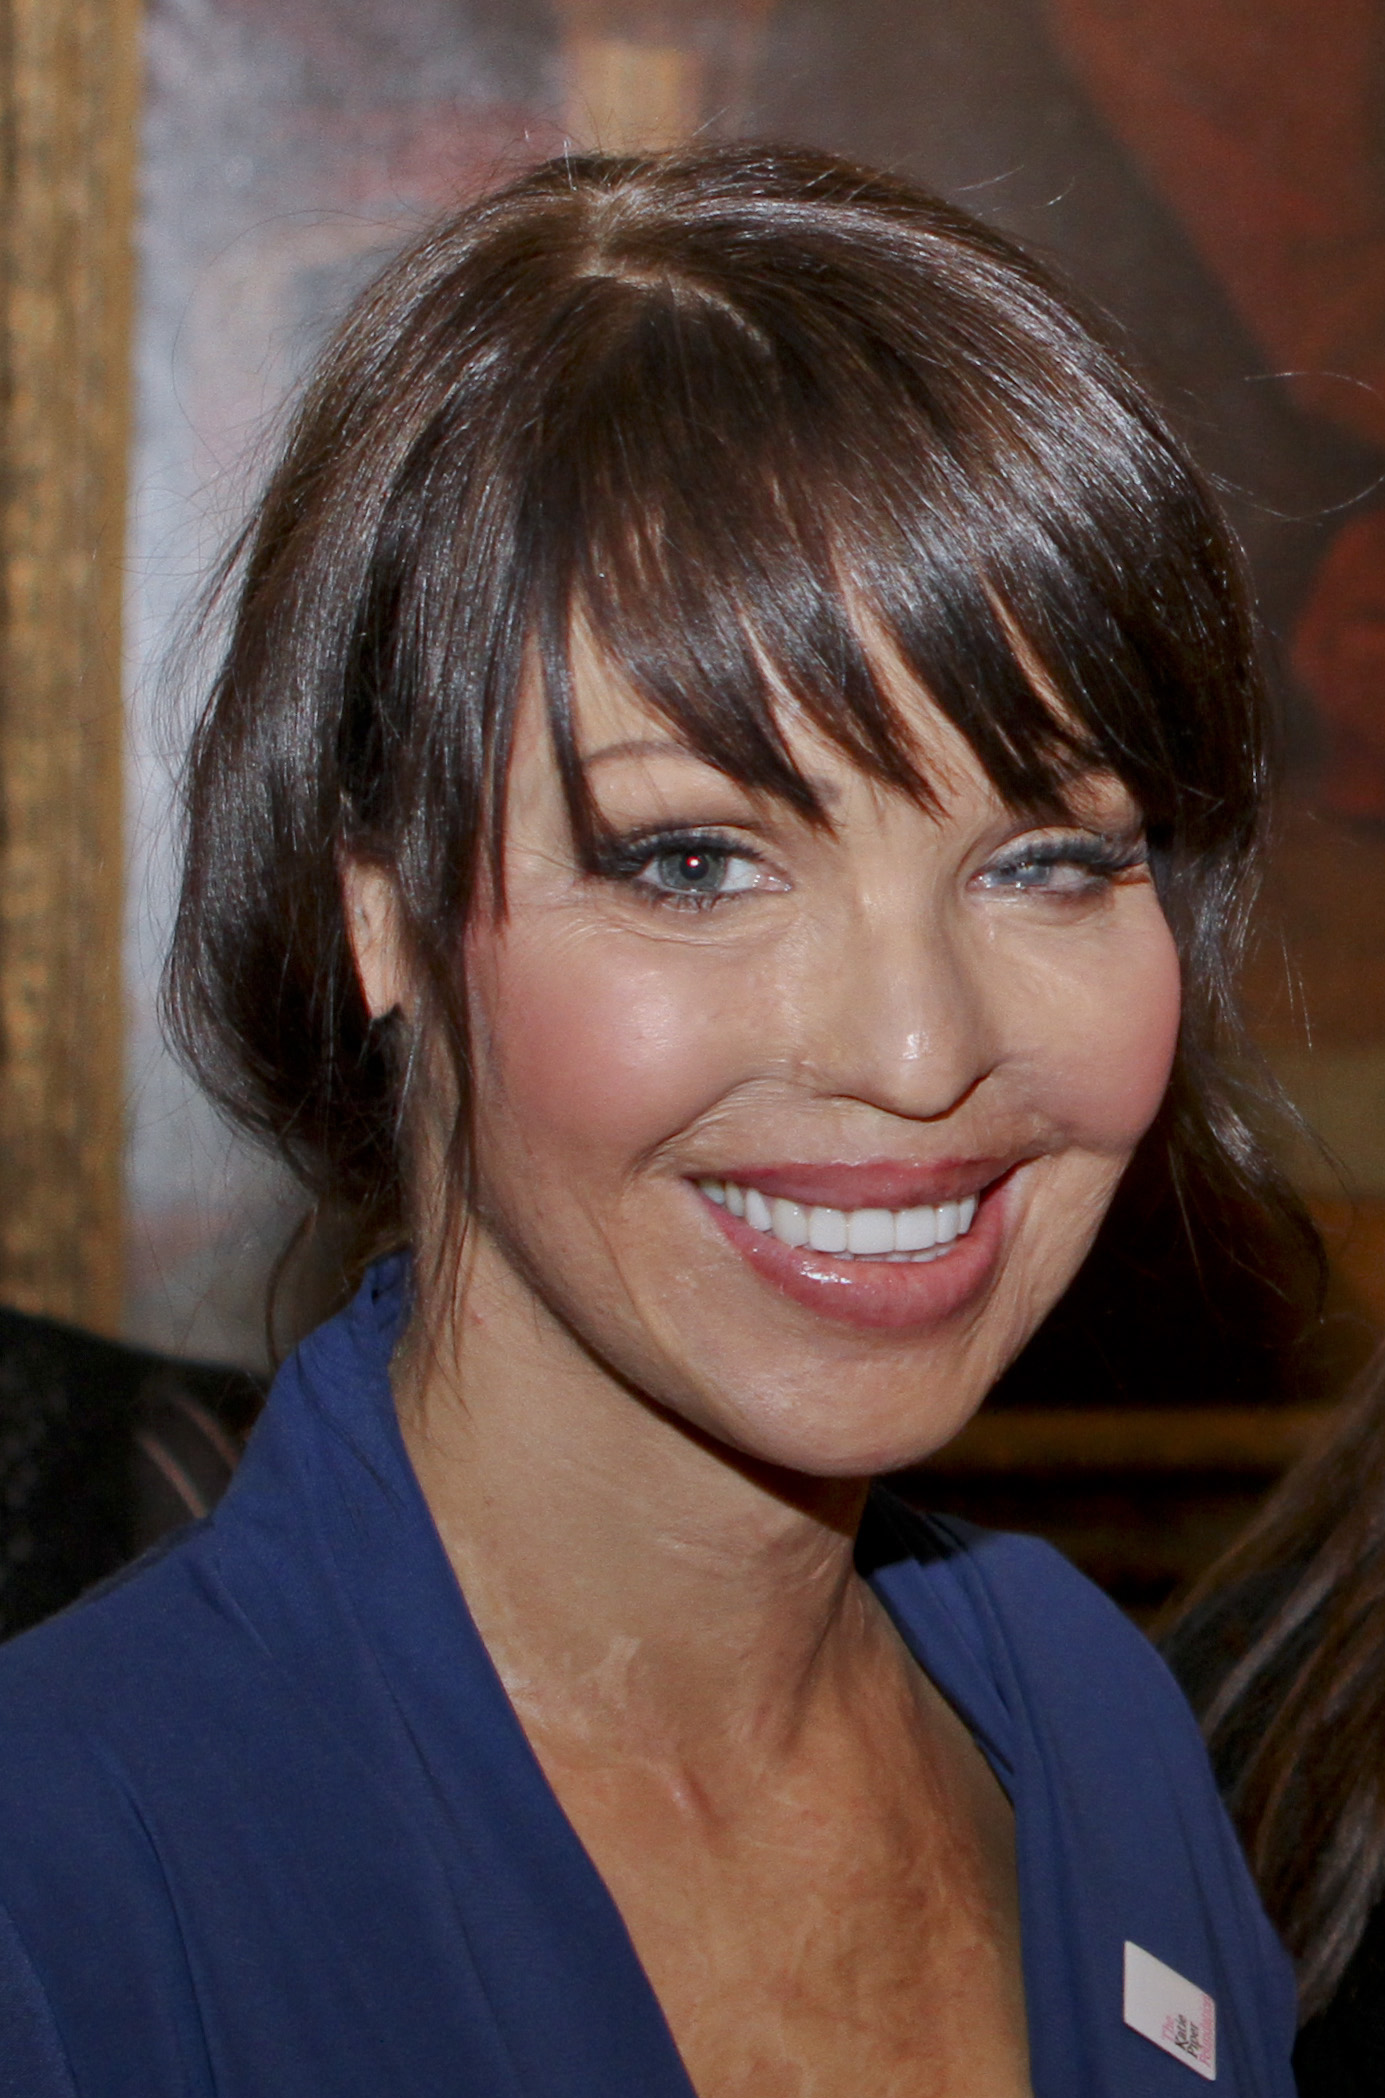 Famous feminist quotes - Katie Piper - US Embassy London - women empowerment quotes - women empowering women